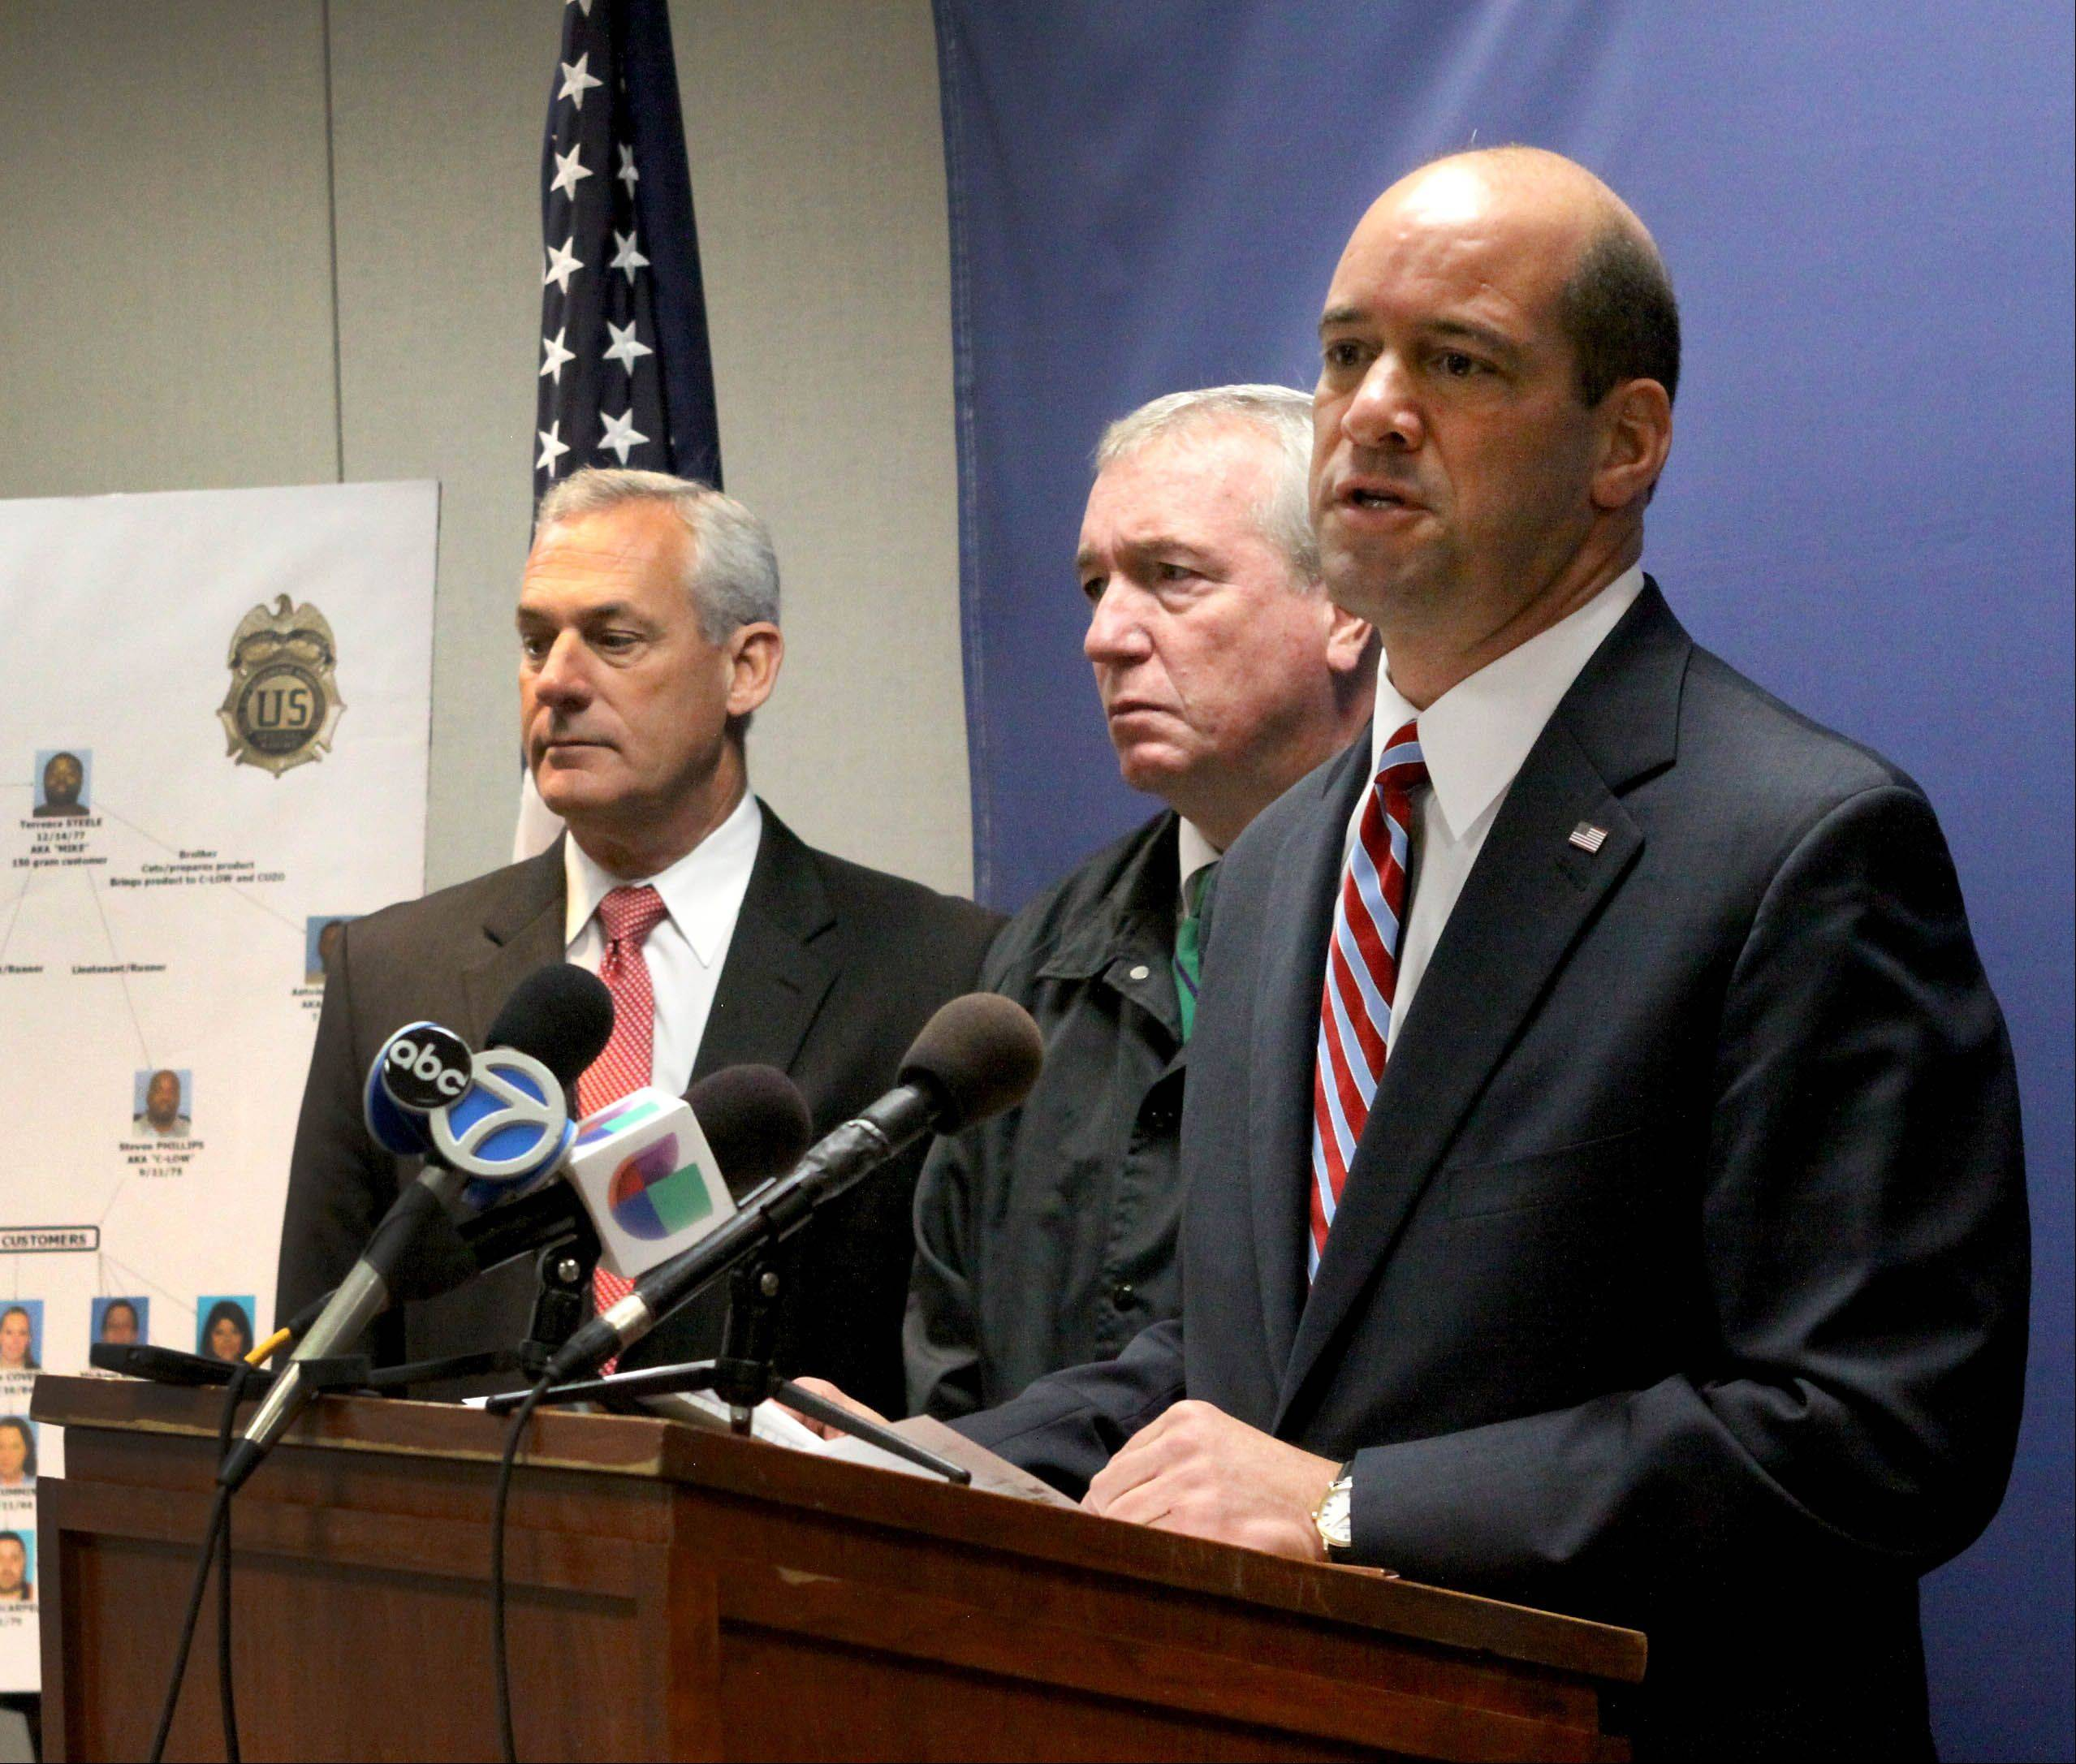 Left to right are Mark Piccoli, DuPage Metro Enforcement Group, DEA Special Agent Jack Riley and DuPage County State's Attorney Robert Berlin announcing that 31 people have been arrested in a heroin conspiracy bust in Cook and DuPage counties, during a news conference yesterday at the DuPage County Courthouse in Wheaton.